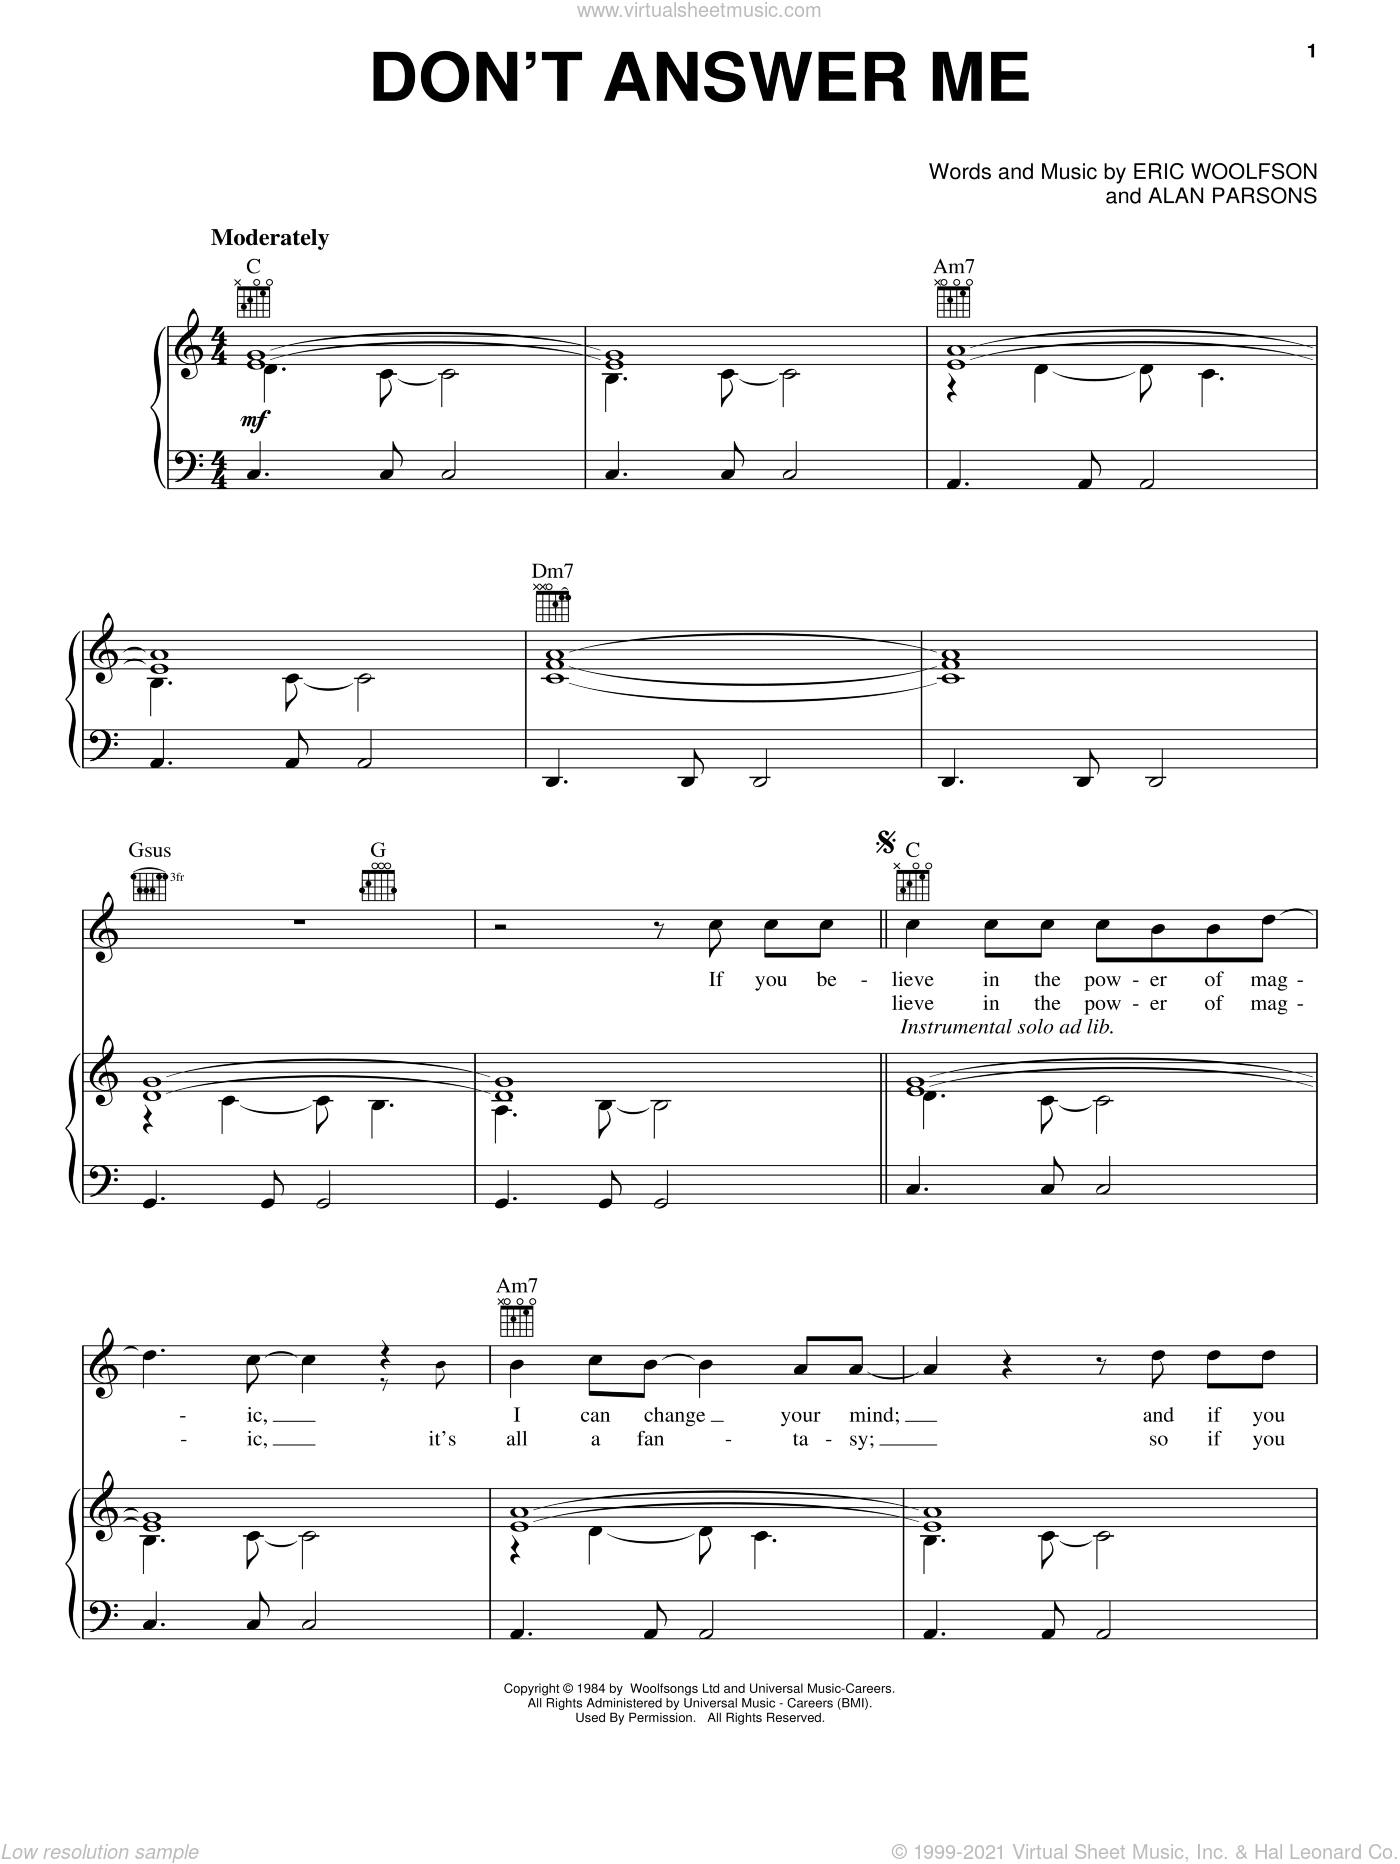 Don't Answer Me sheet music for voice, piano or guitar by Alan Parsons Project, Alan Parsons and Eric Woolfson, intermediate skill level